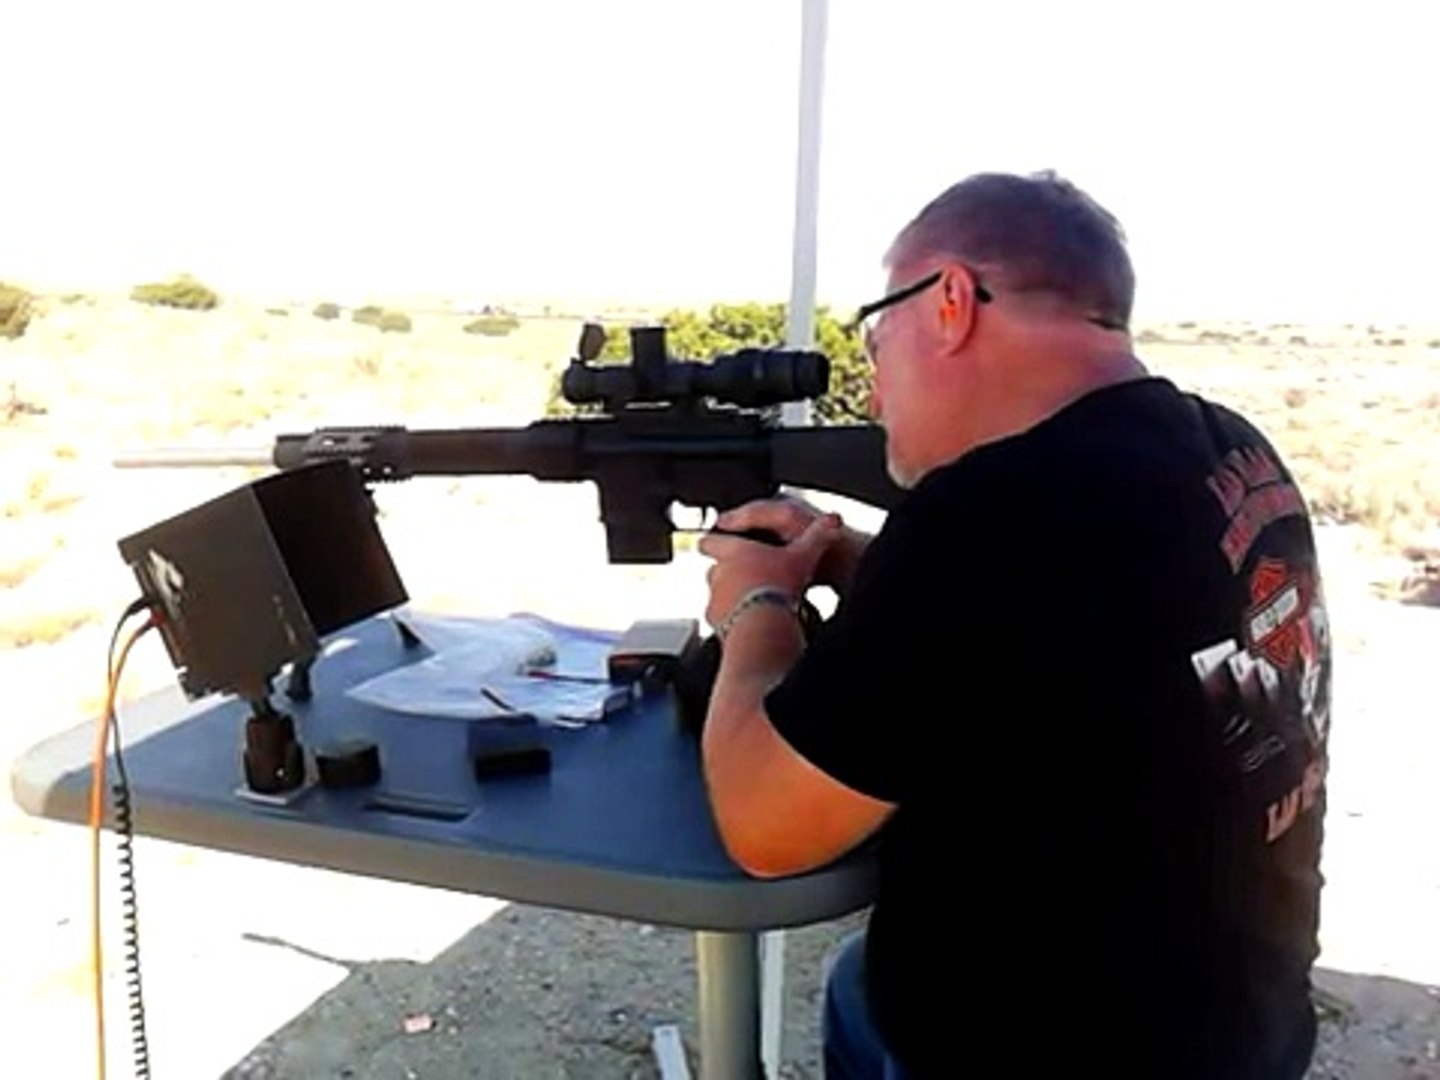 Shooting the 22-250 AR15 at 100 yards